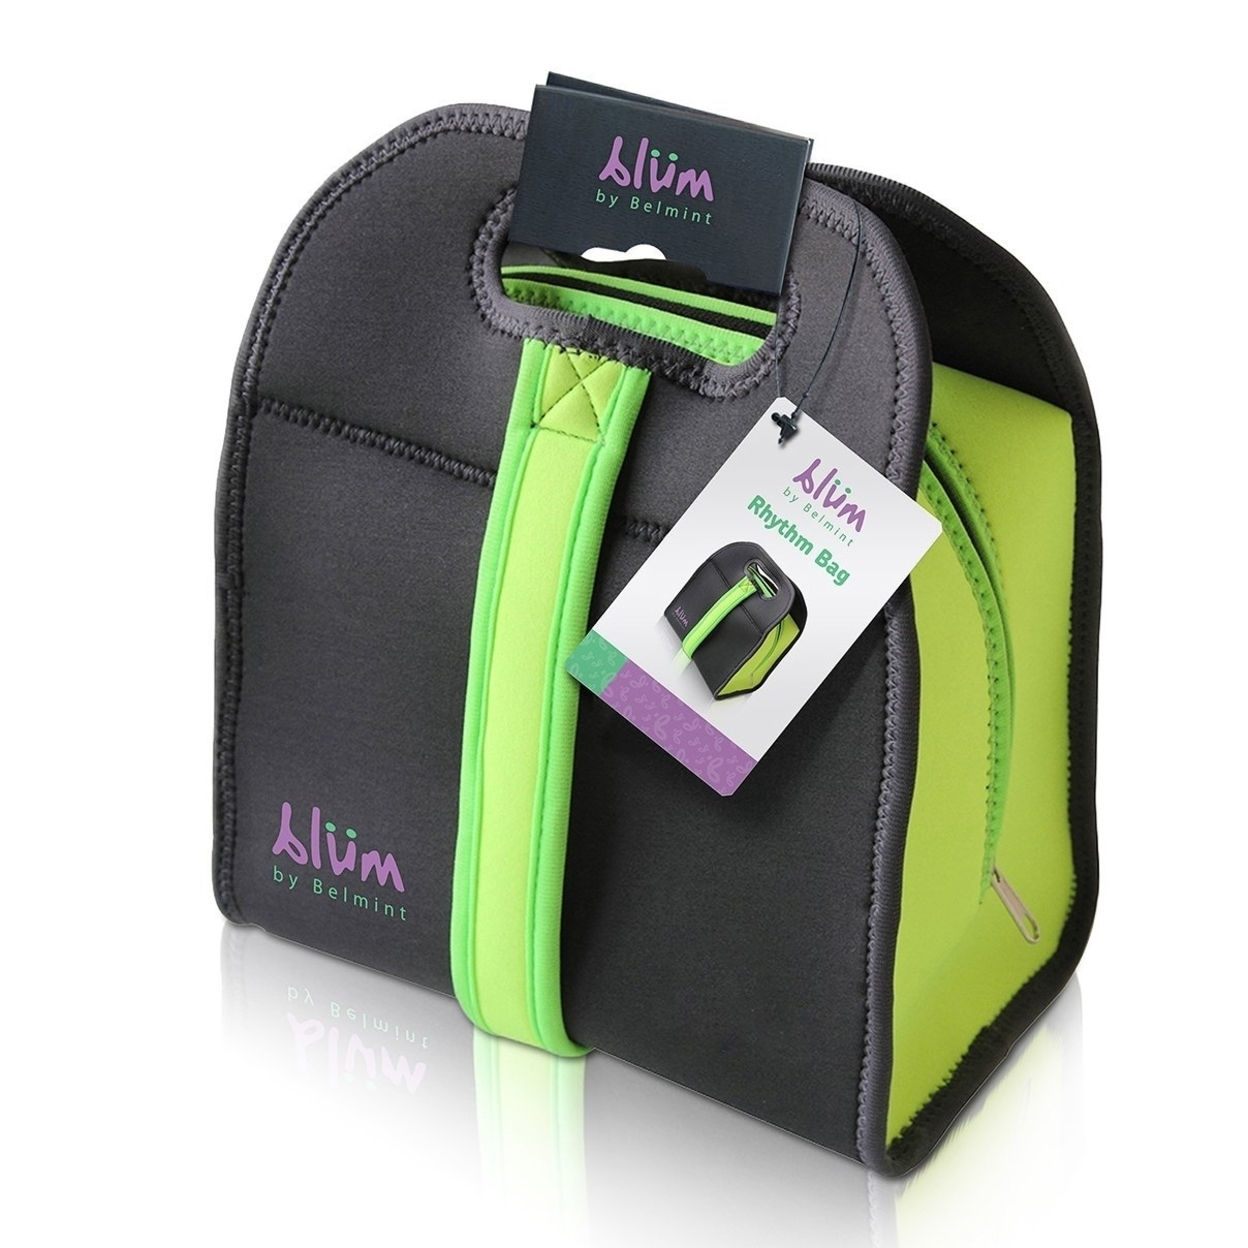 Blum Collection Insulated Neoprene Lunch Bag with Adjustable Strap (Green) 59b9aaa12a00e46d944912a2